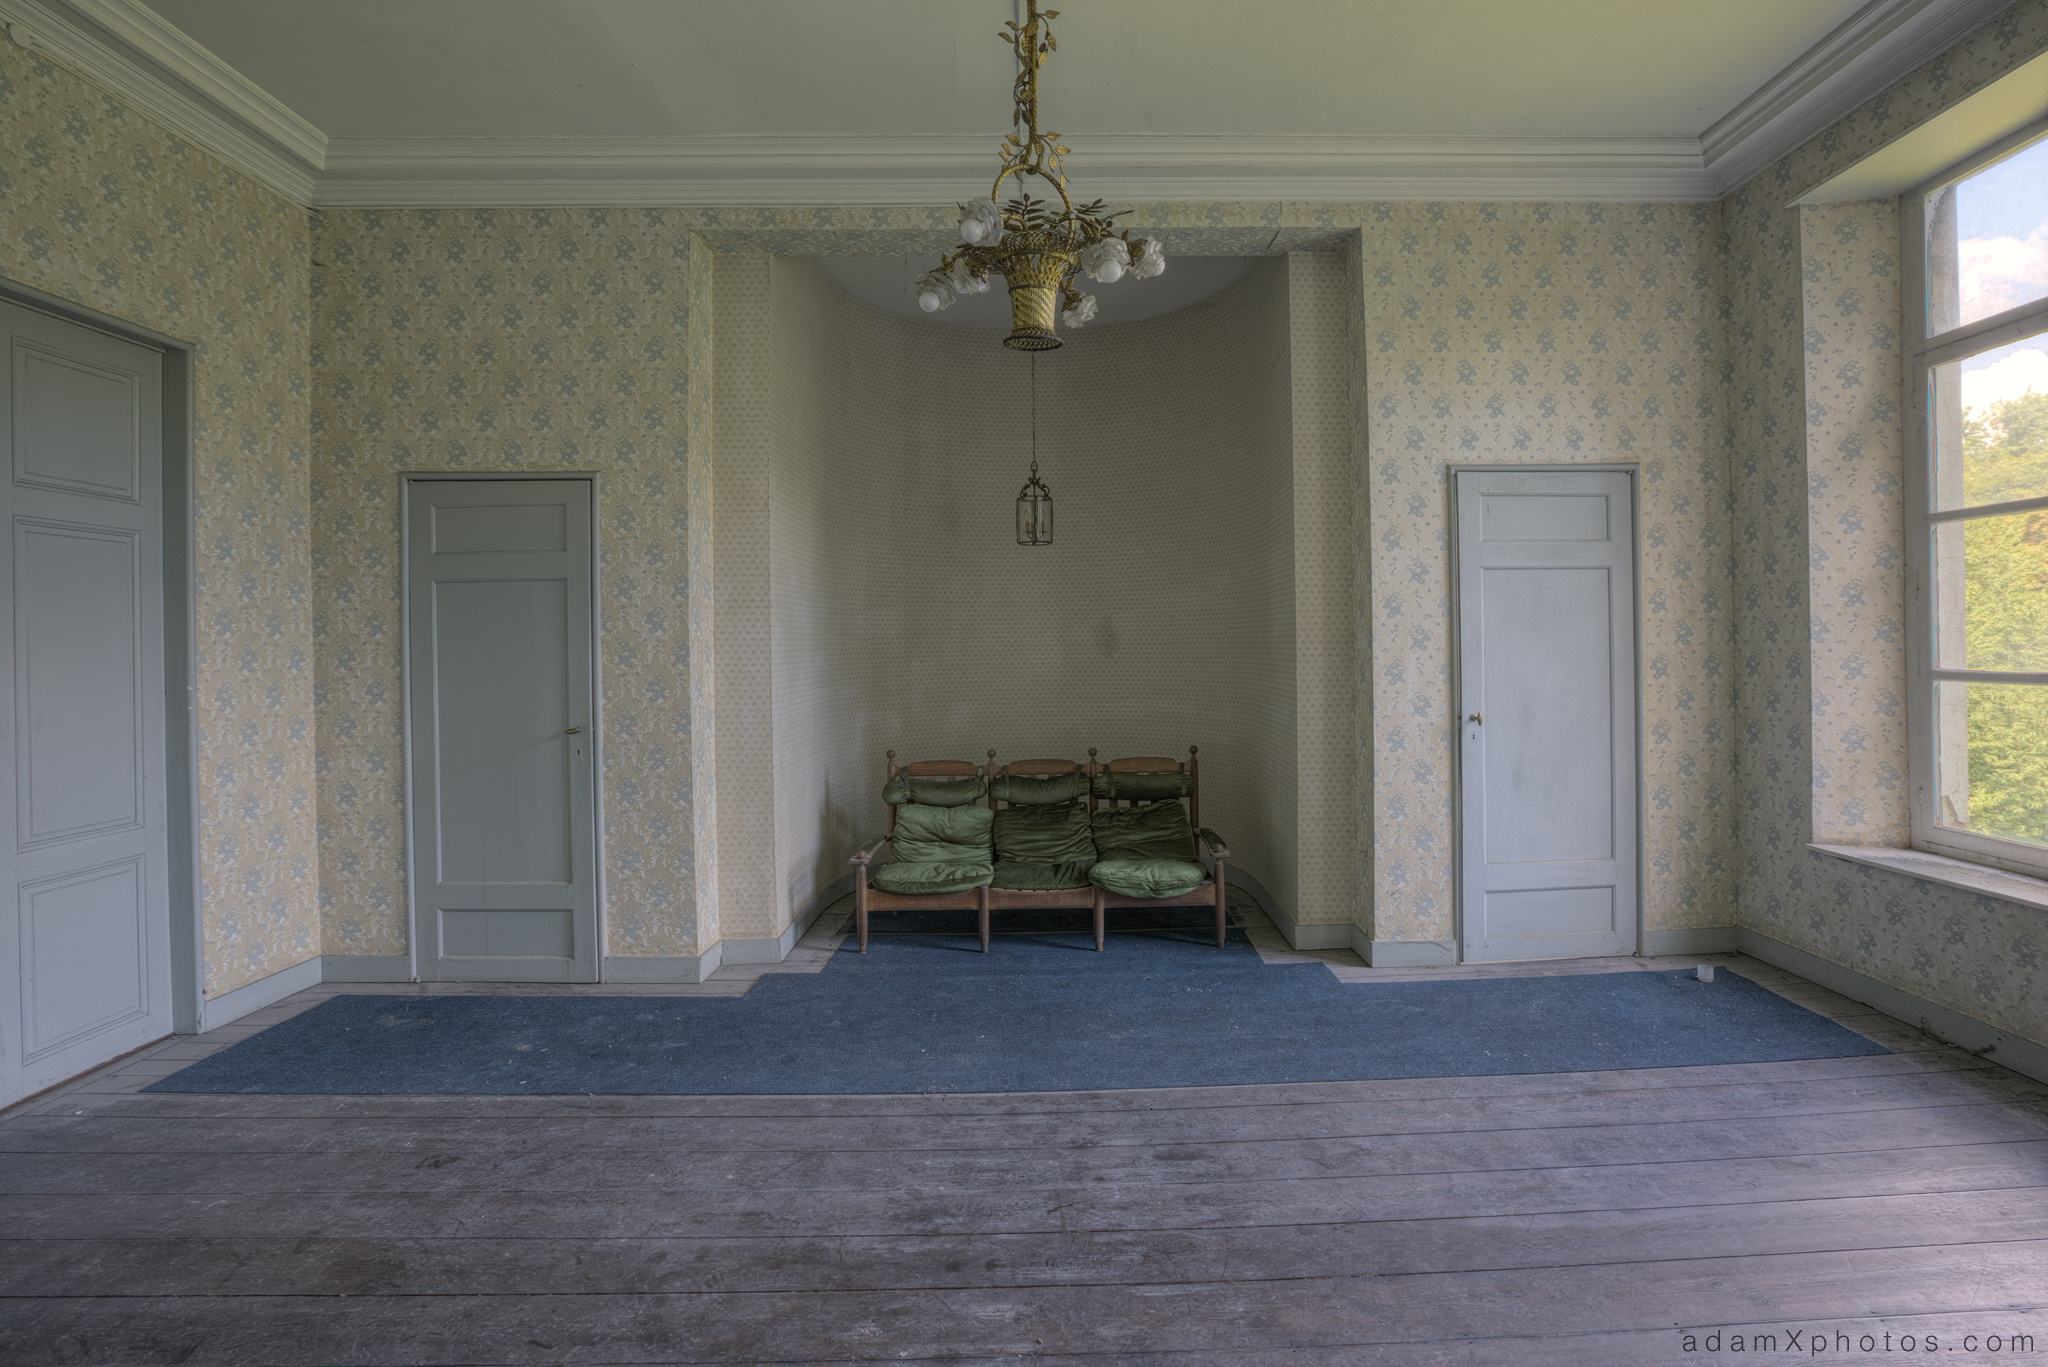 Adam X Chateau de la Chapelle urbex urban exploration belgium abandoned room chairs wallpaper